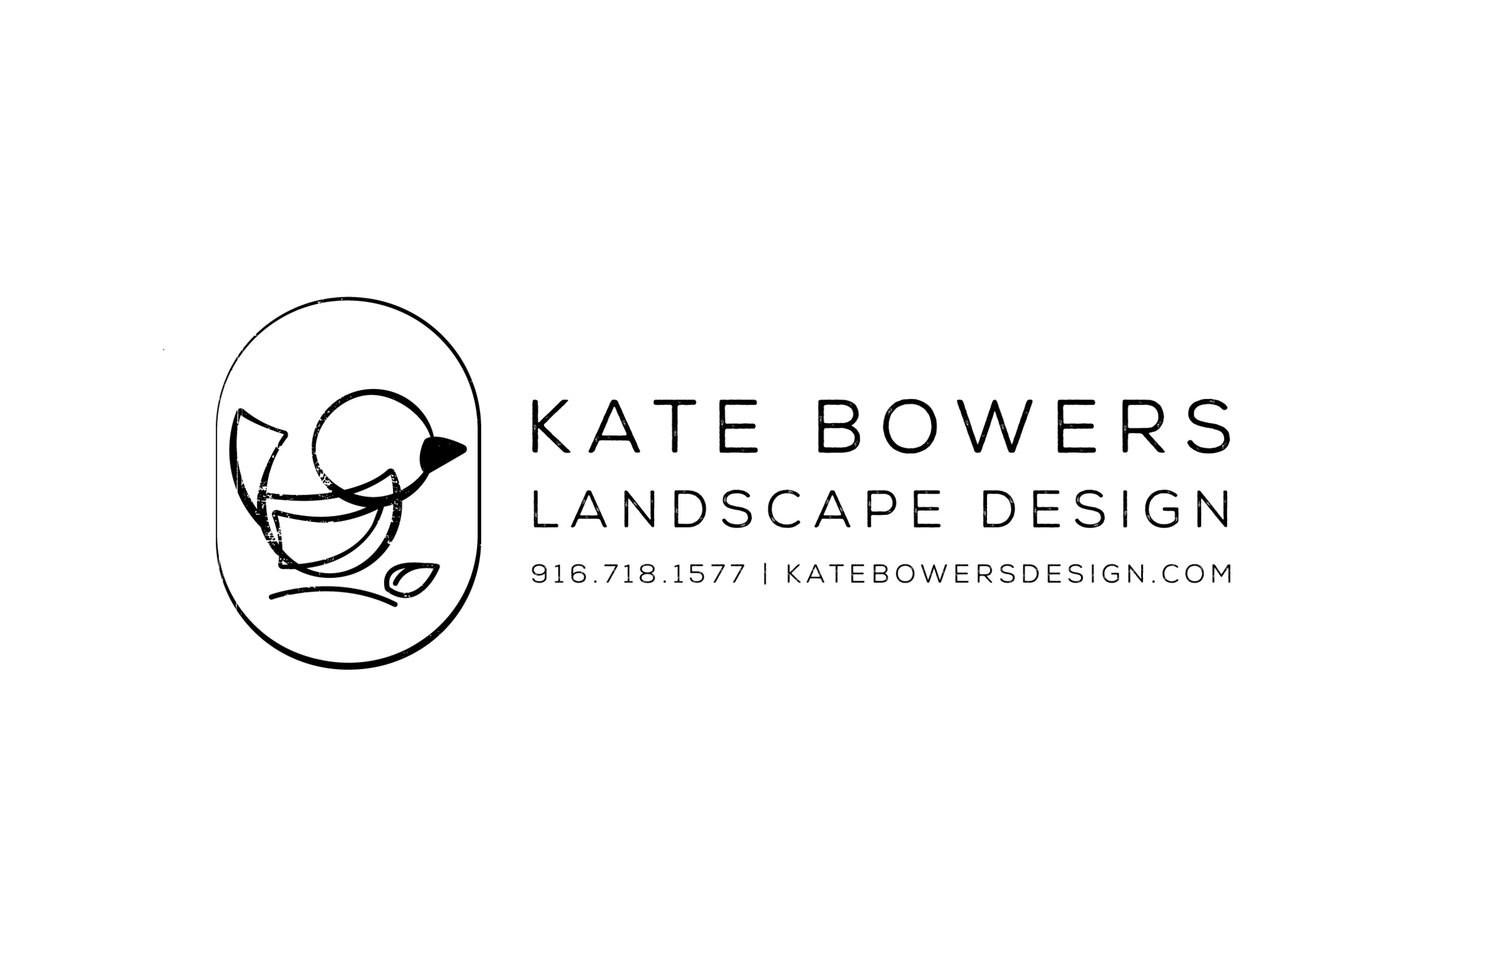 Kate Bowers Landscape Design